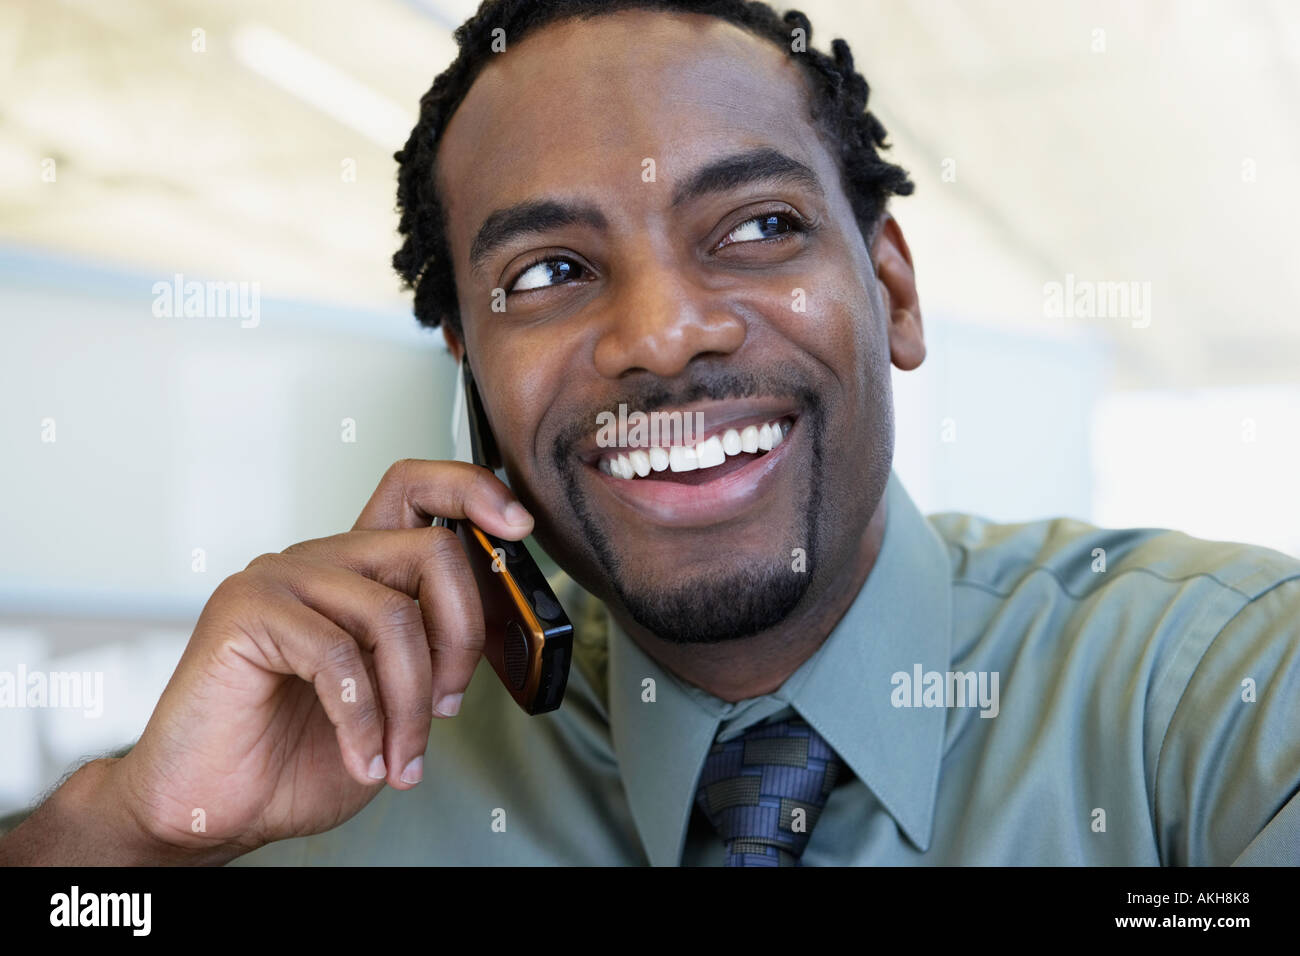 Office worker using a cellular telephone - Stock Image